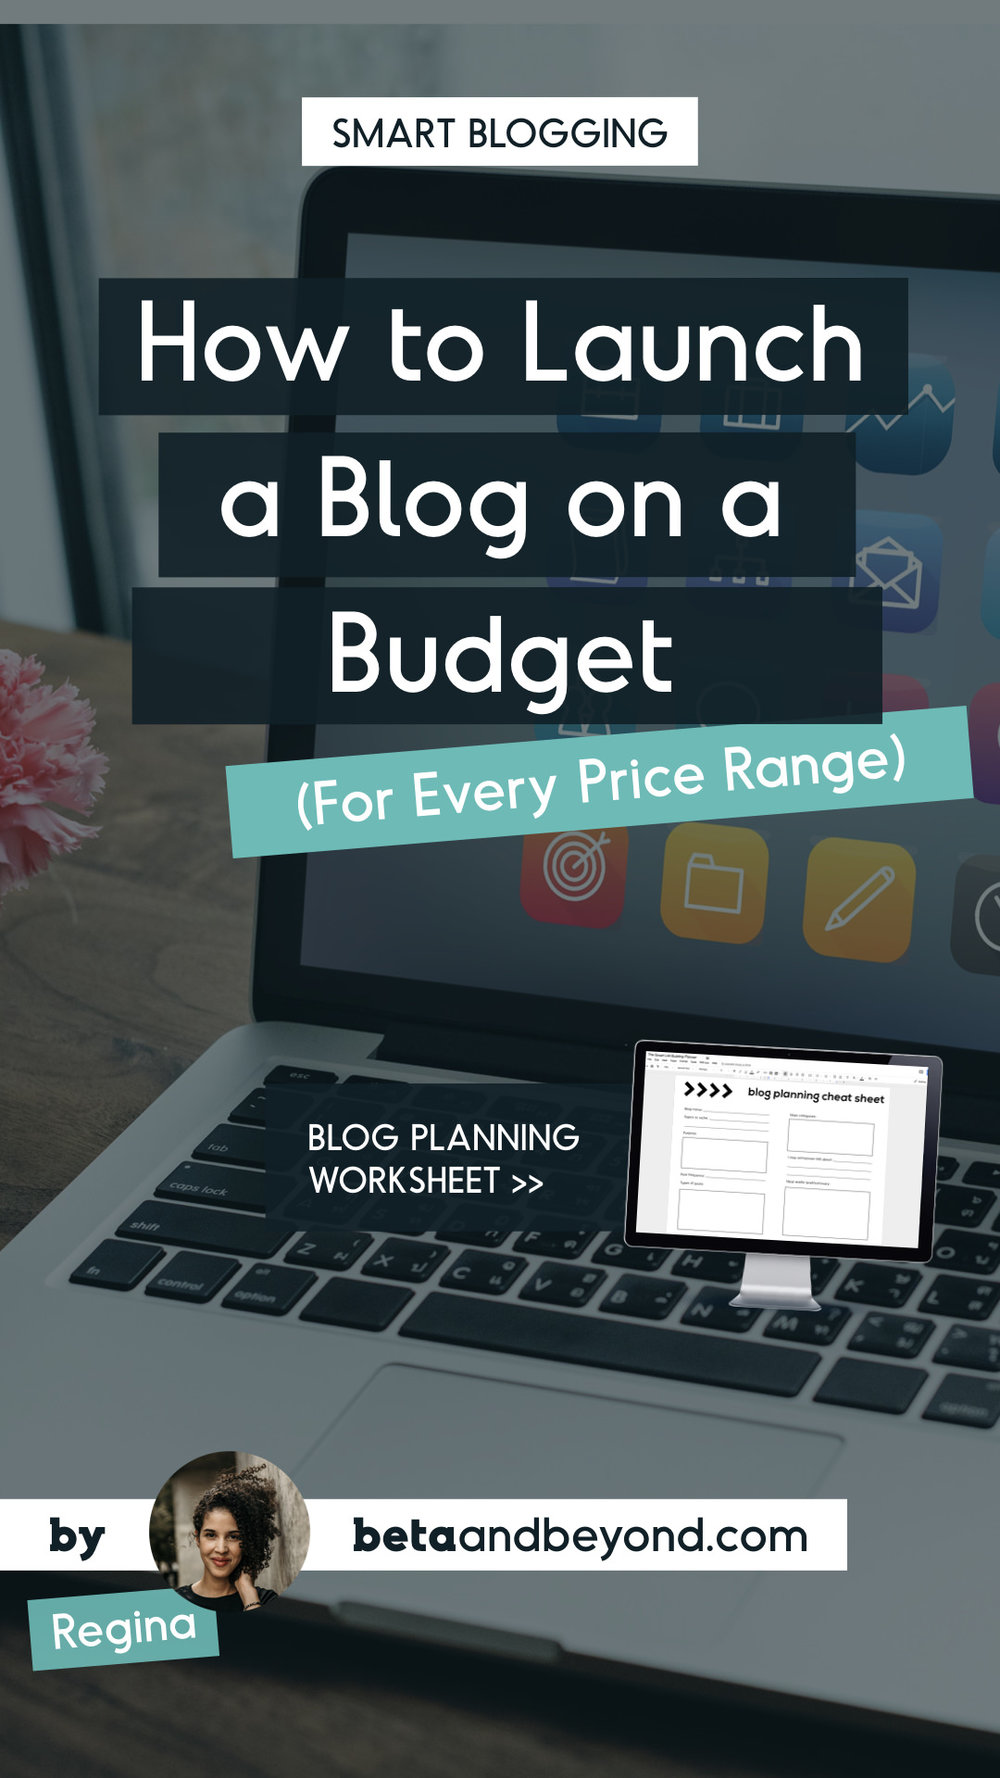 how to launch a blog on a budget.jpeg